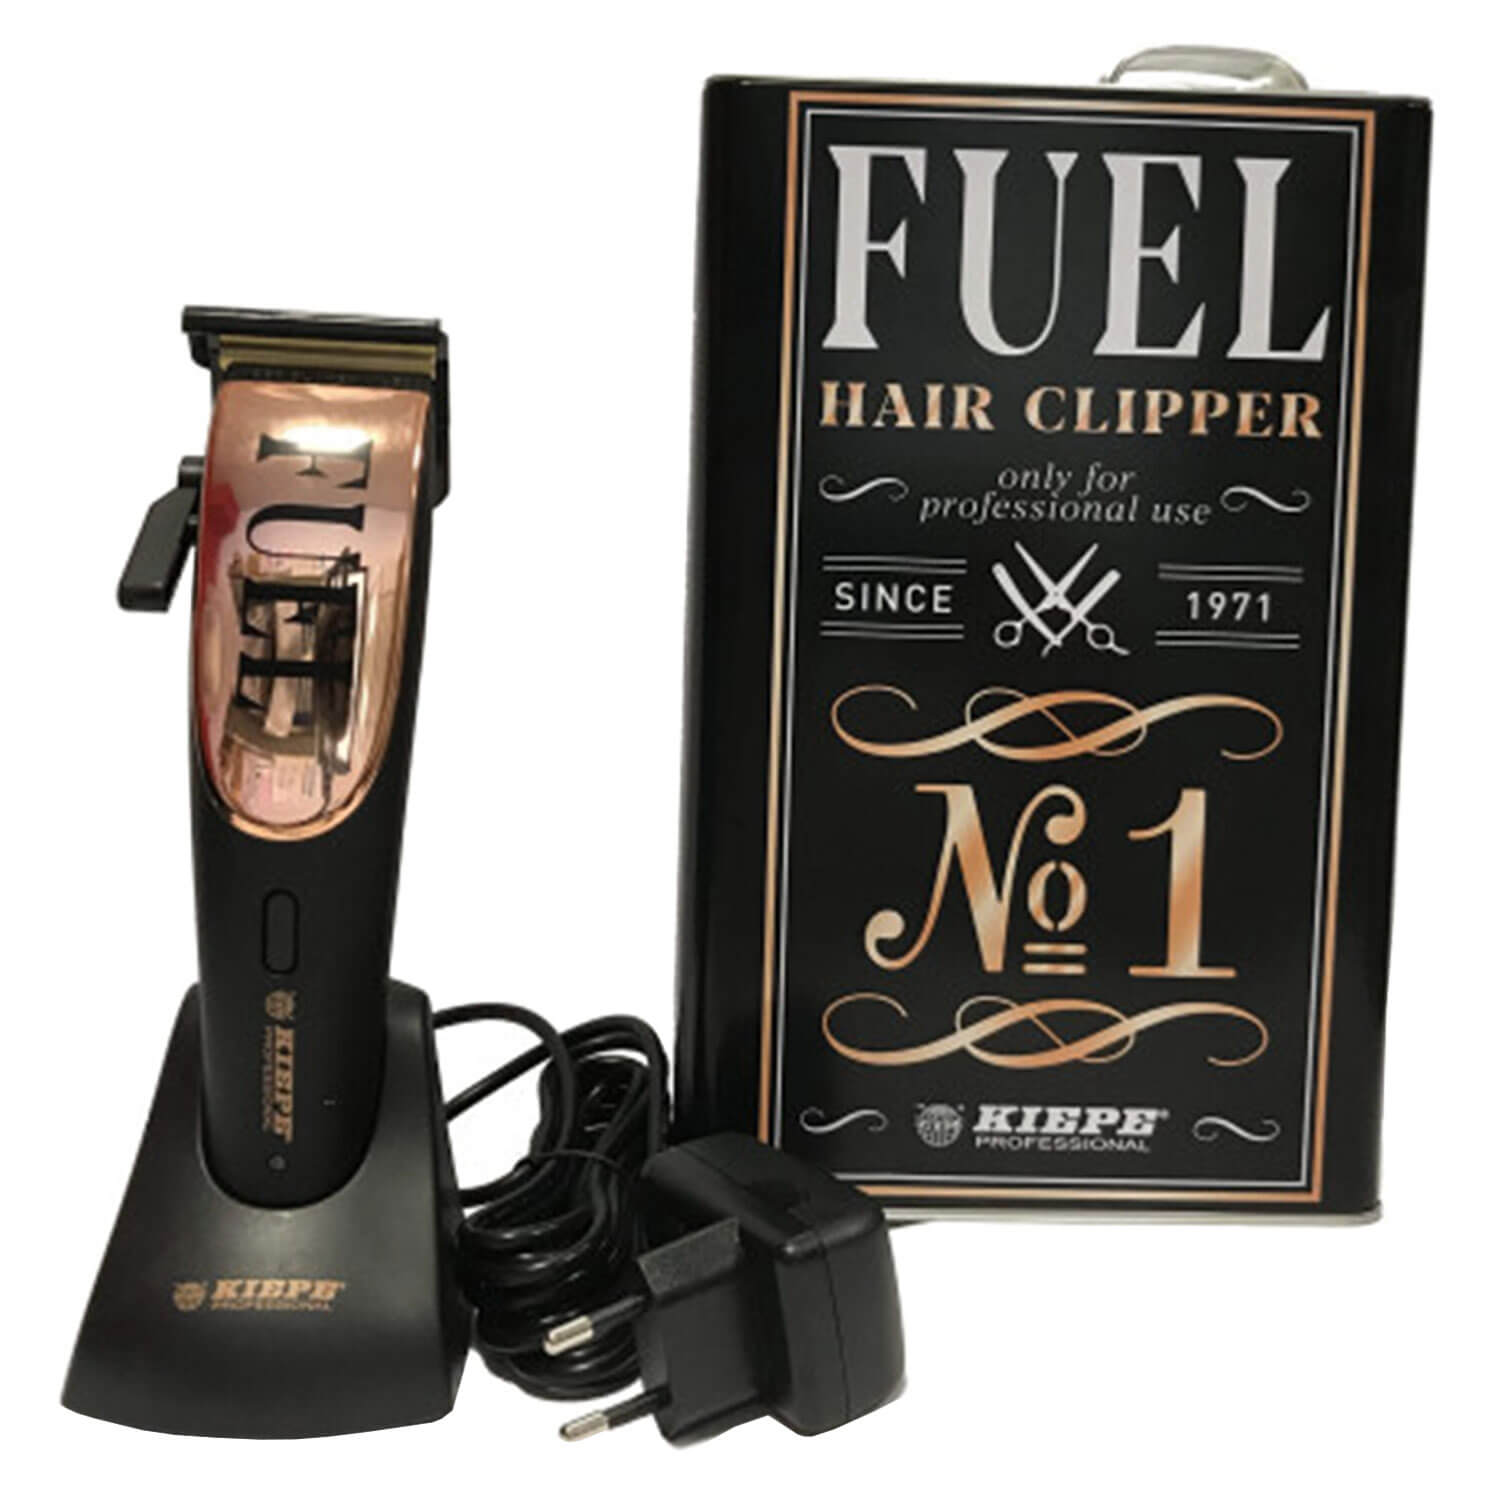 Kiepe - Fuel Hair Clipper